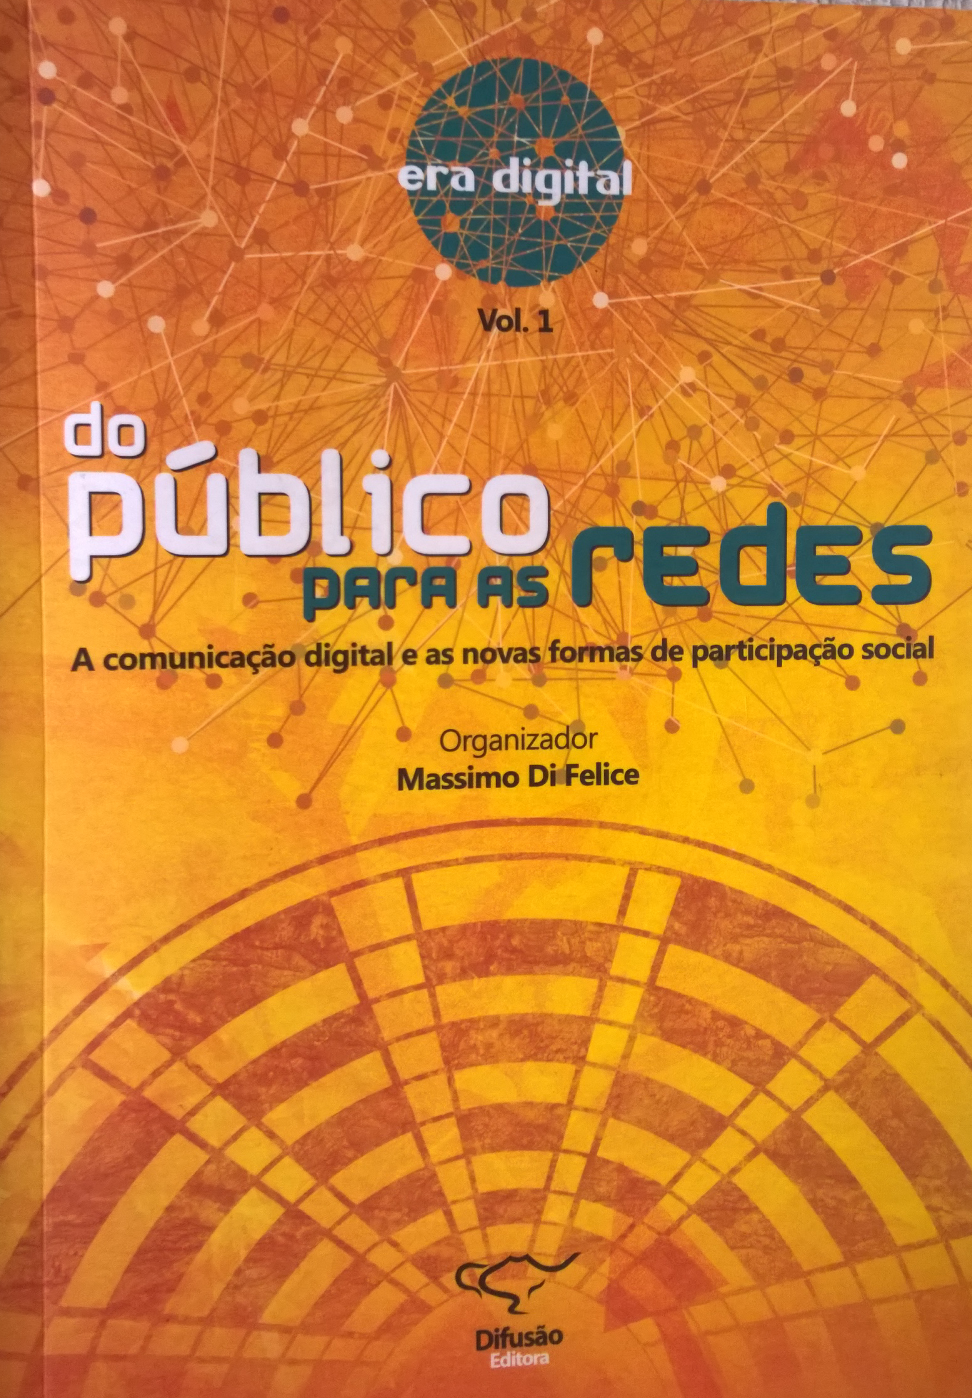 Do público para as redes